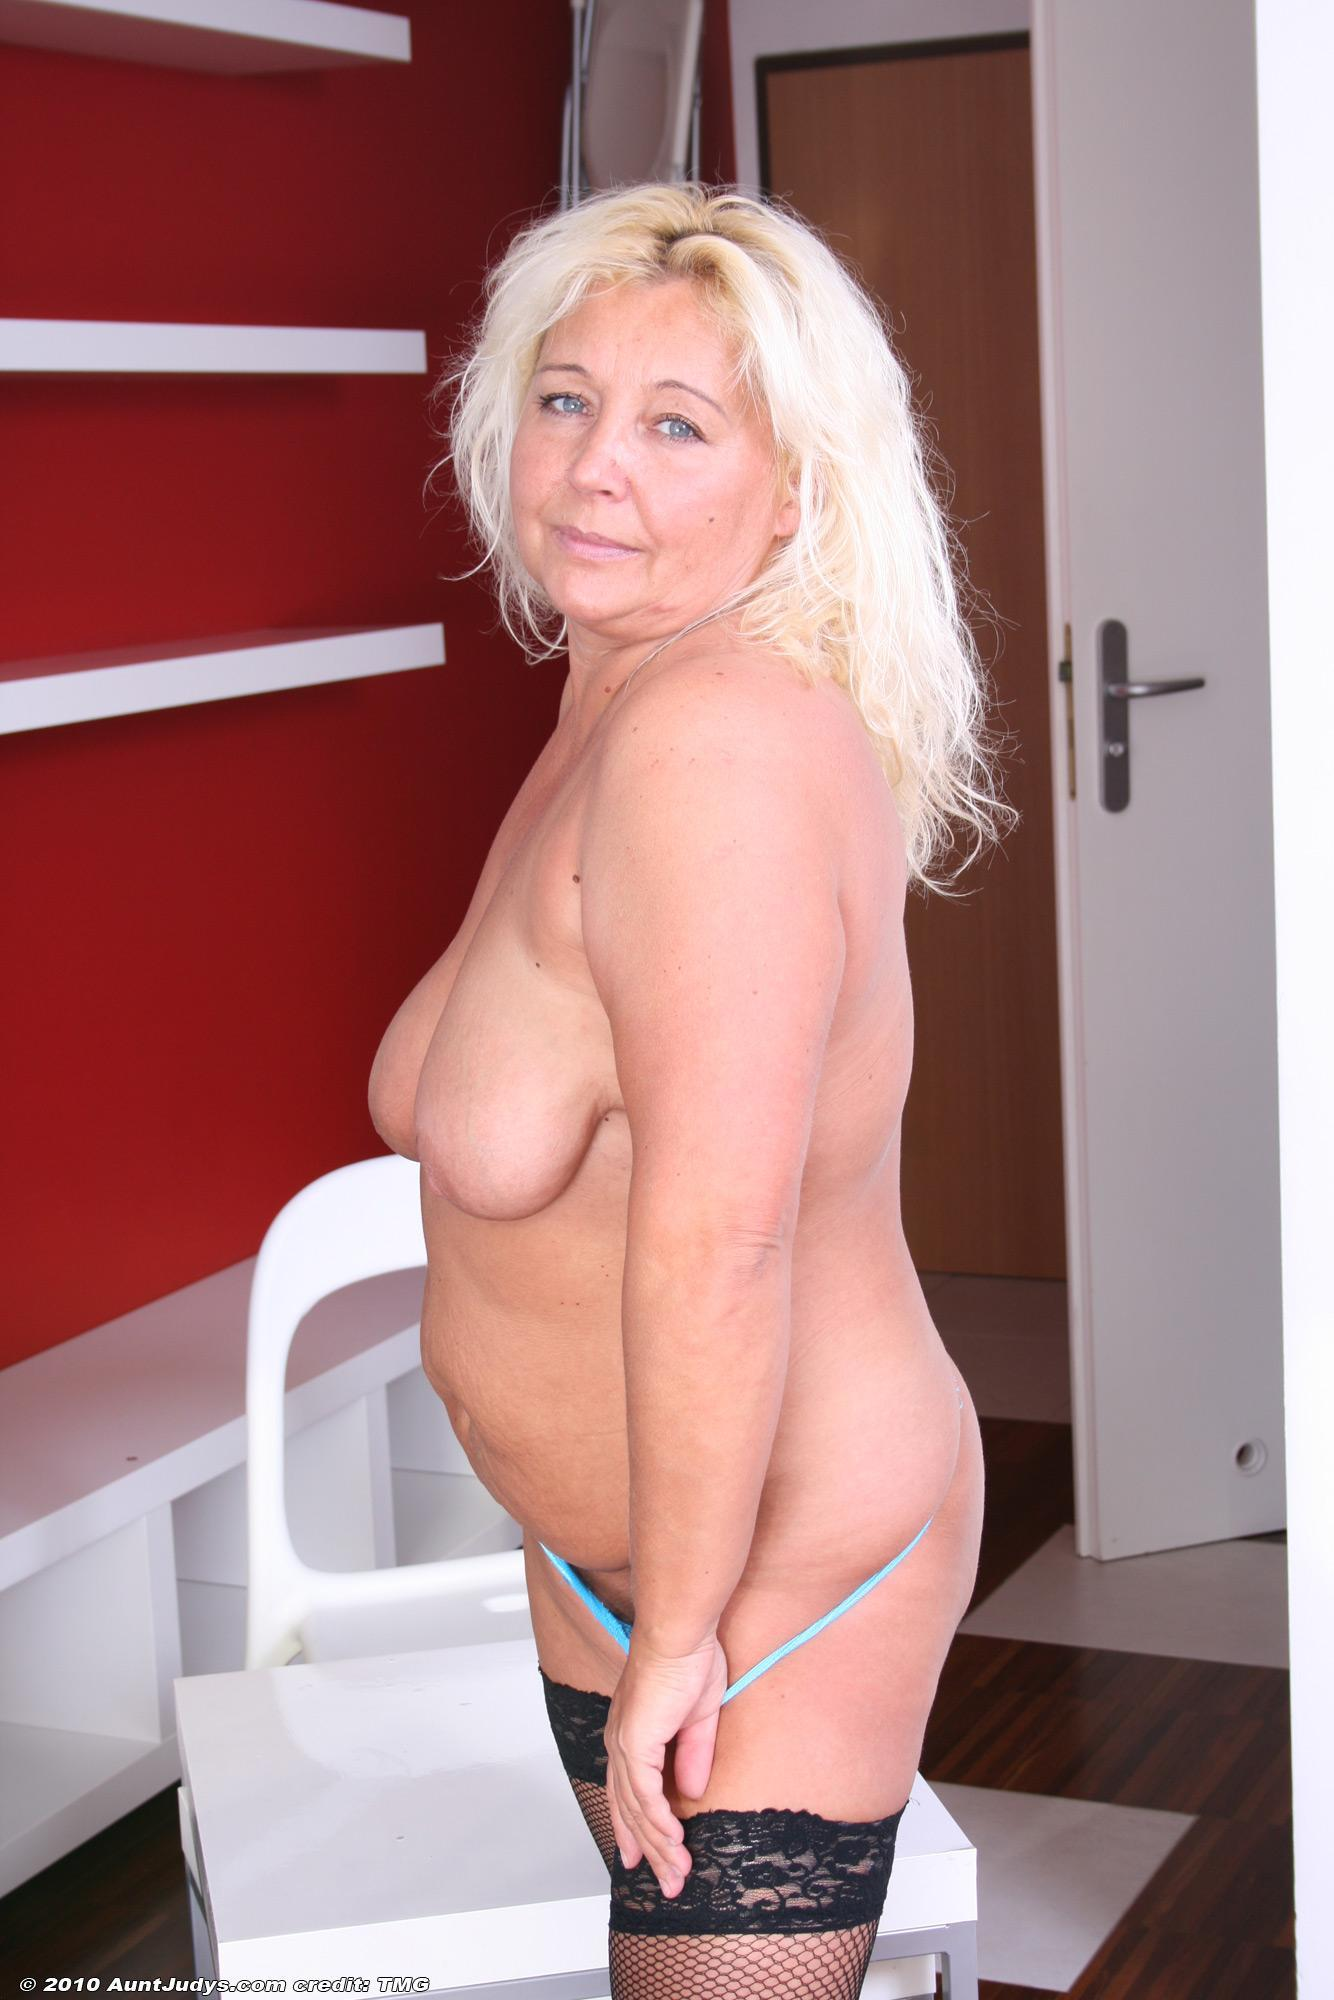 Aged yellow-haired dame doing away with skirt and melon-holder before sliding panties over monster-sized butt